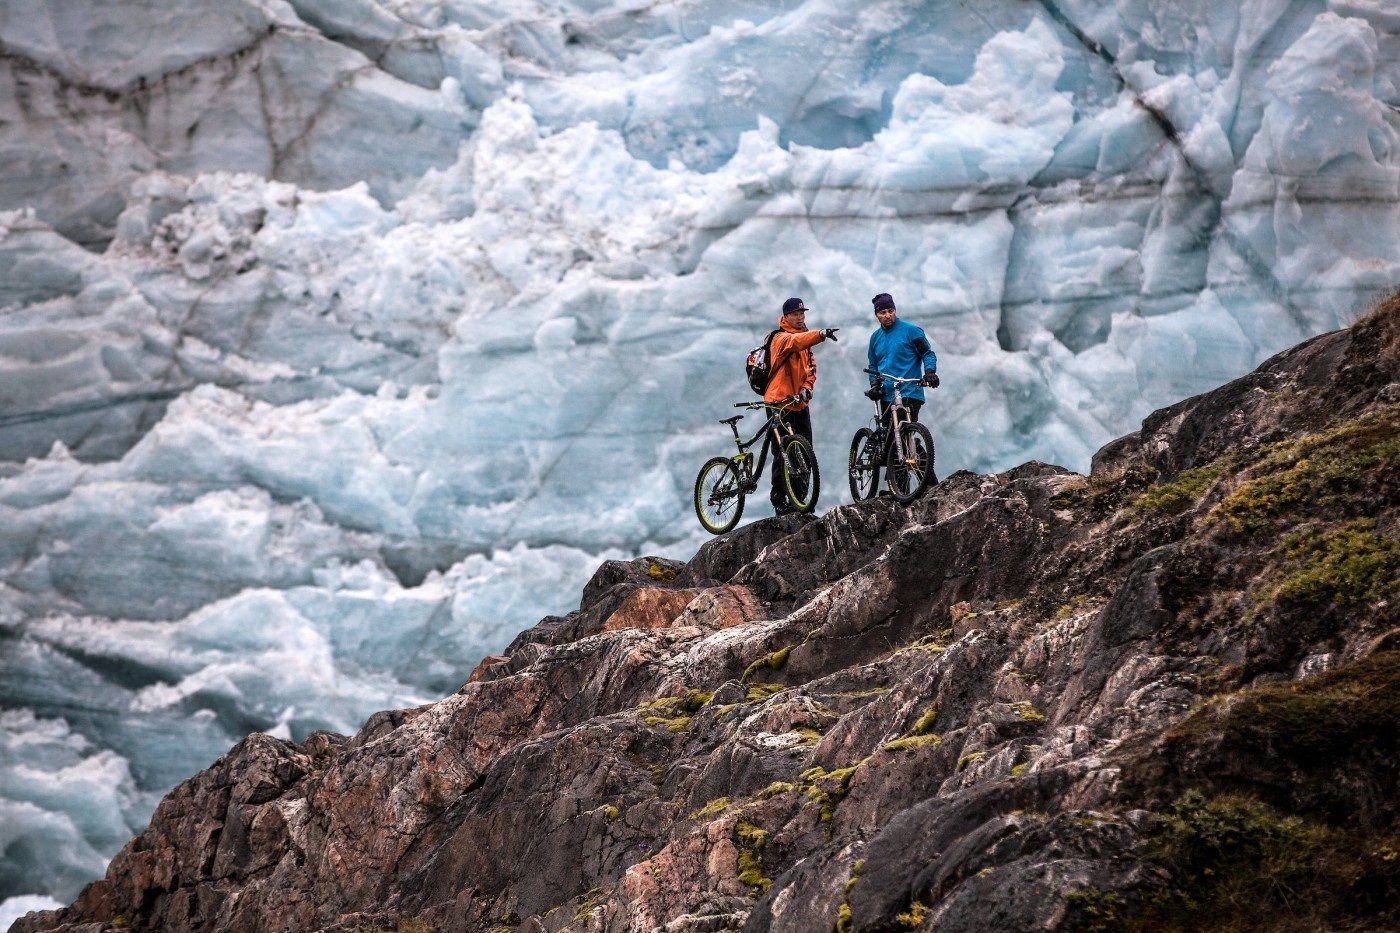 Two mountainbikers looking for a trail near Russell Glacier in Greenland. Photo by Mads Pihl - Visit Greenland